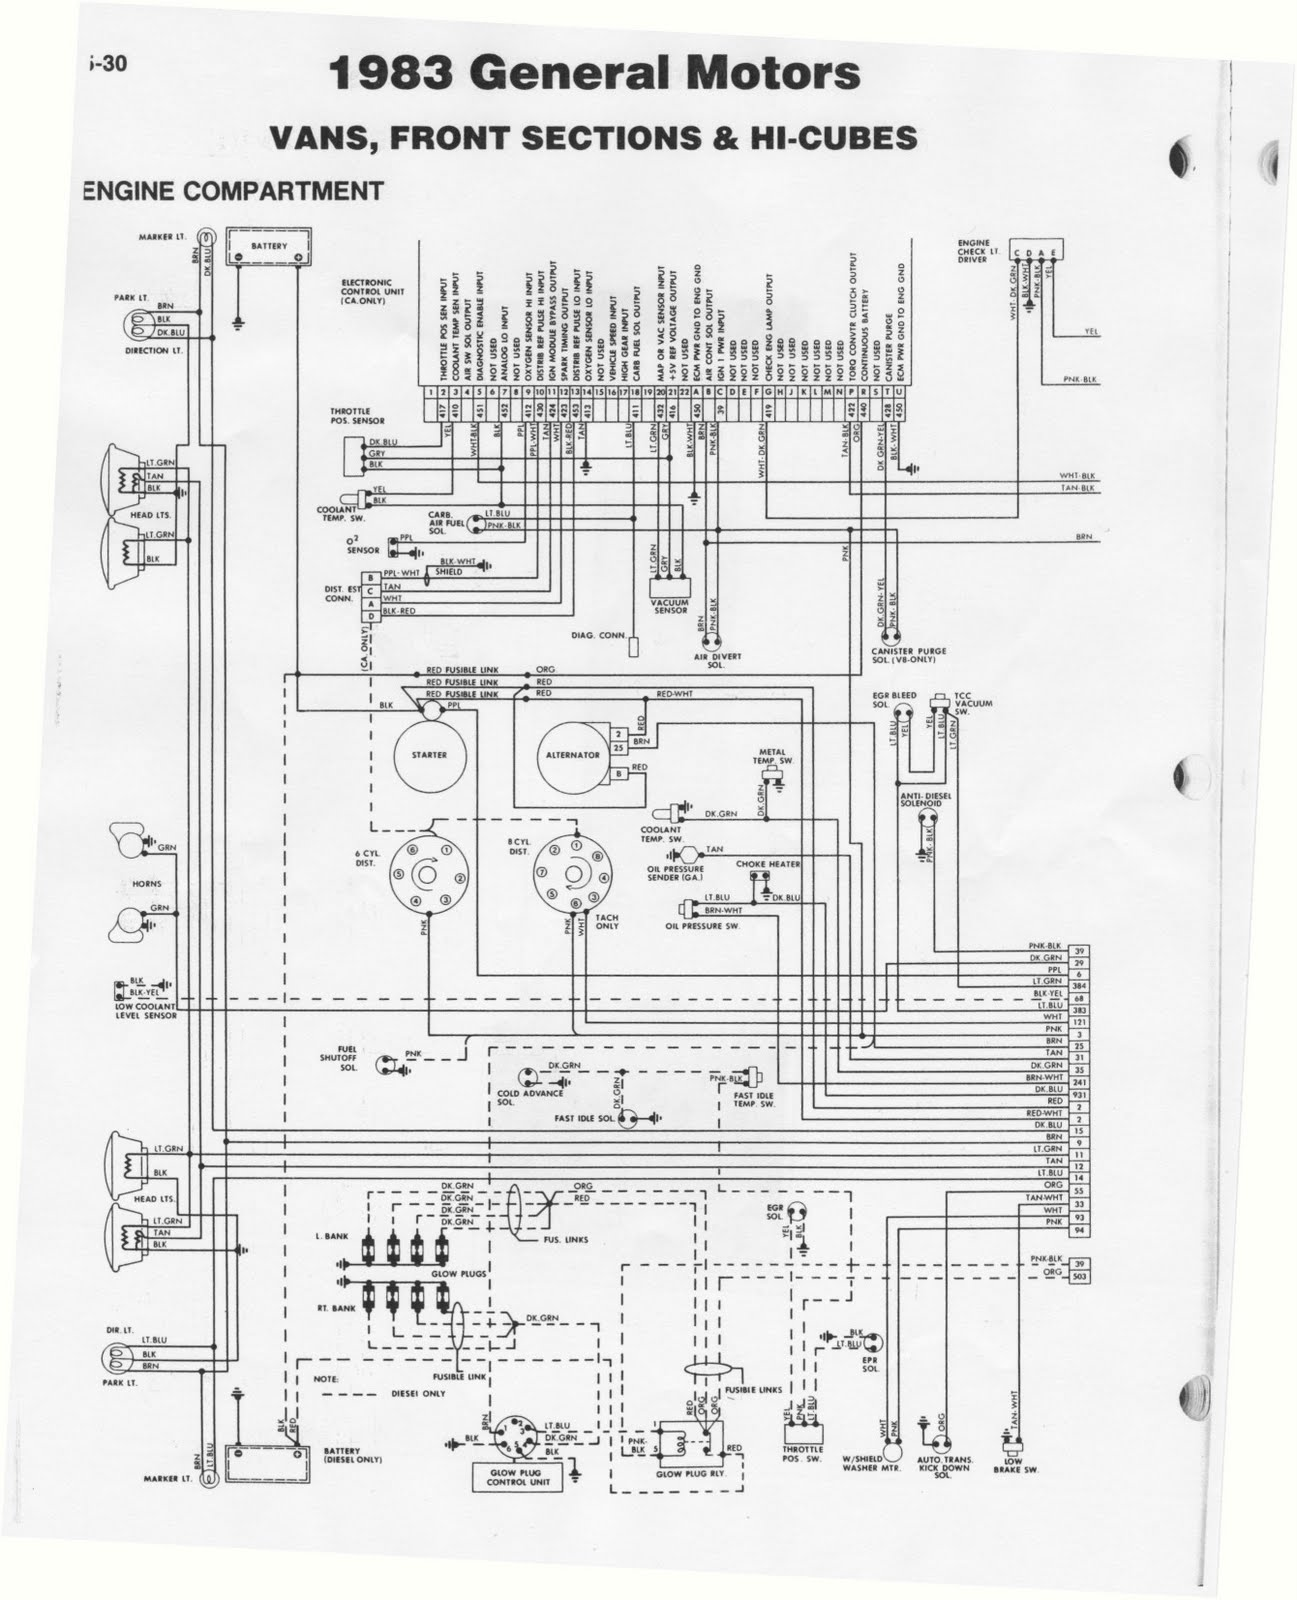 83+gm+forward+control+wiring+charts 001 1984 pace arrow wiring diagram fleetwood rv wiring diagram \u2022 free fleetwood motorhome fuse diagrams at gsmx.co